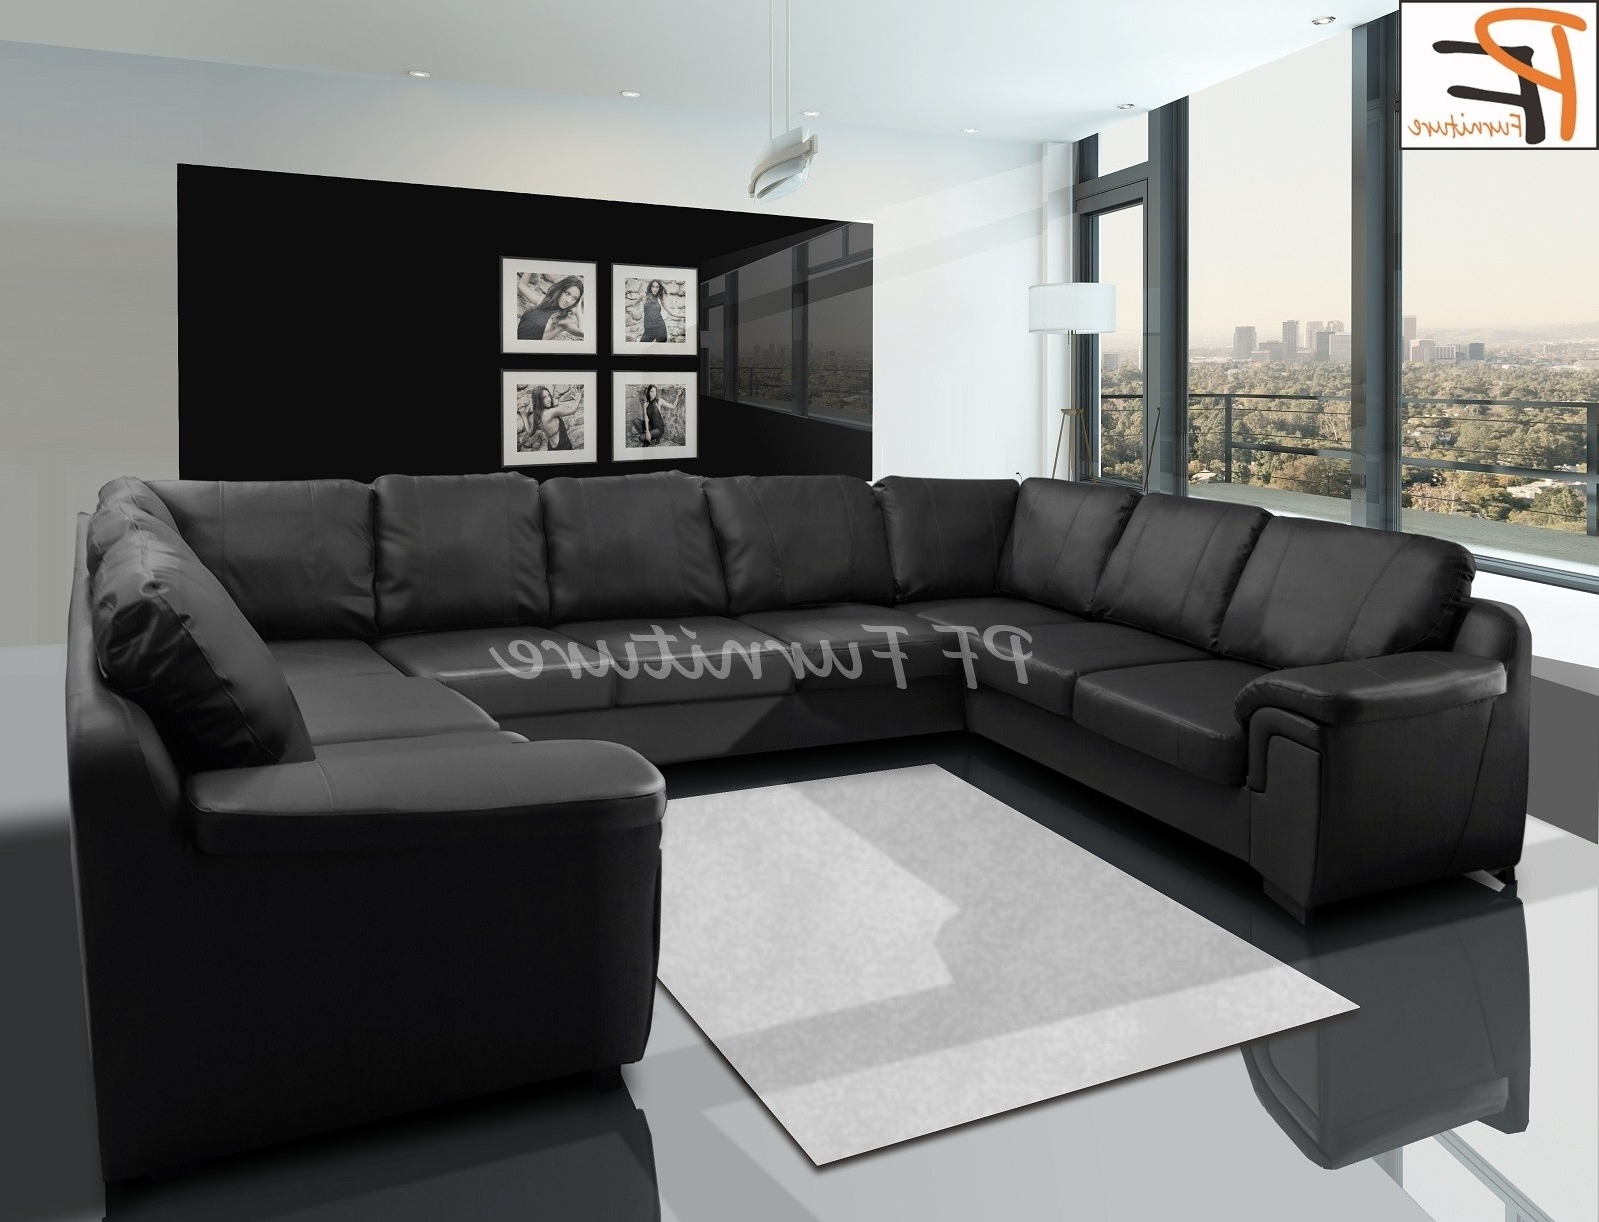 Large U Shaped Sofa – Home And Textiles Inside Most Popular Large U Shaped Sectionals (View 4 of 15)